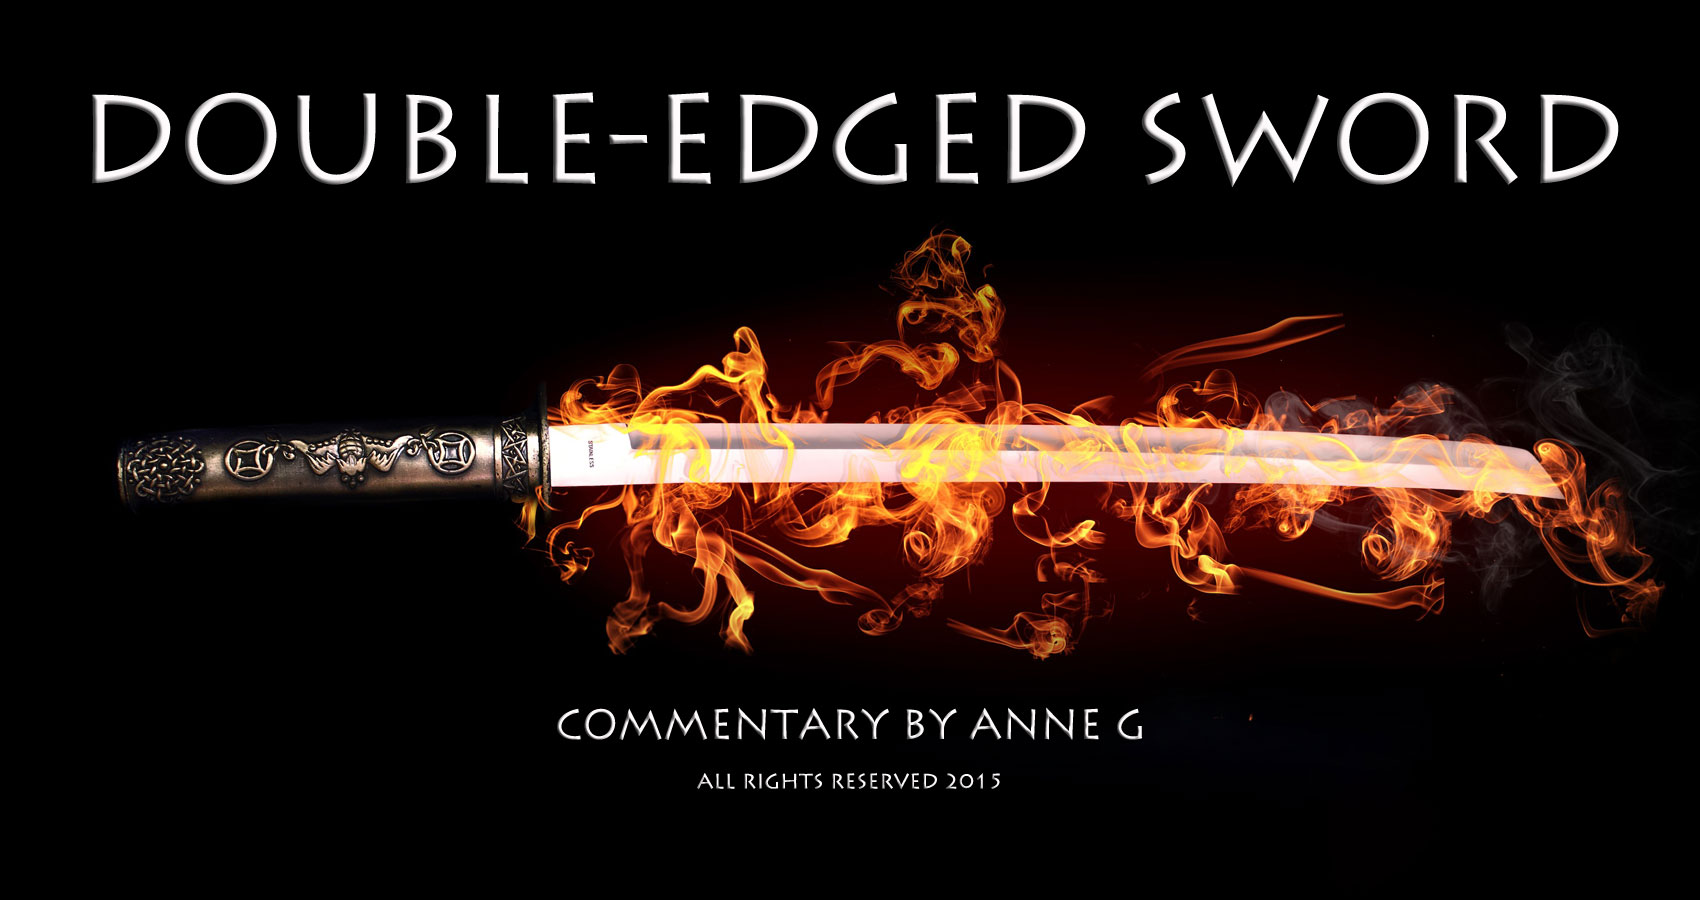 Double-Edged Sword at spillwords.com by Anne G